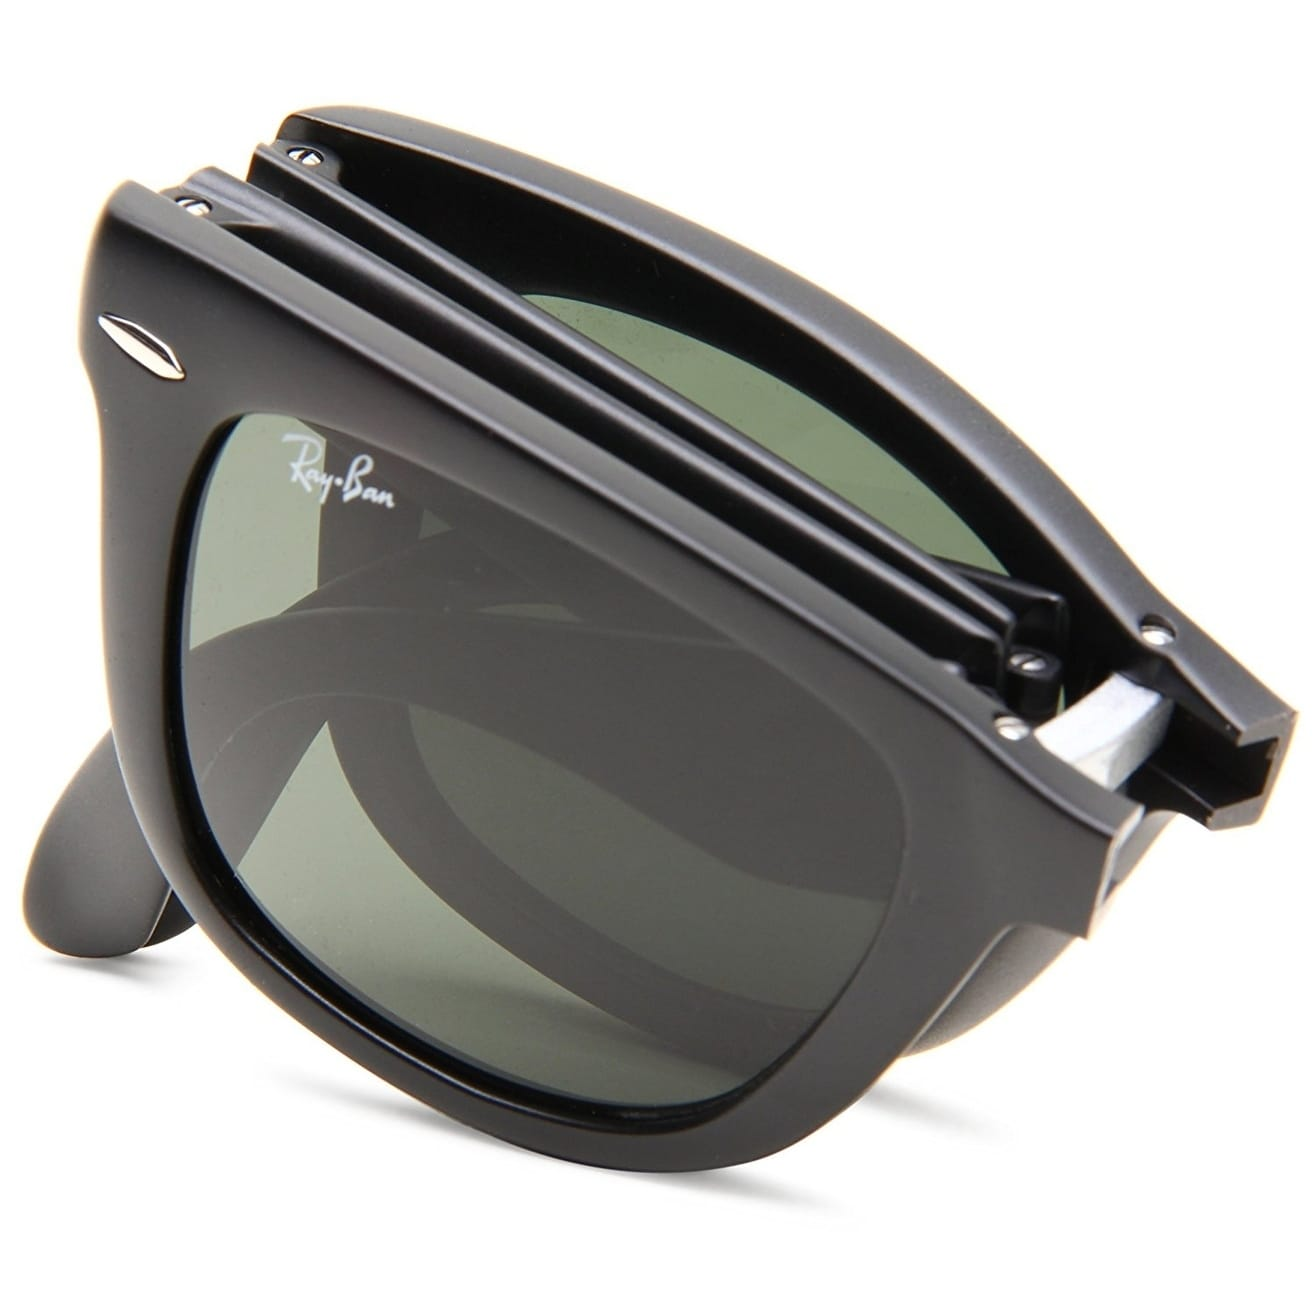 7d3edf4731 Shop Ray-Ban RB4105 Wayfarer Folding Black Frame Green Classic 50mm Lens  Sunglasses - Free Shipping Today - Overstock - 20707666